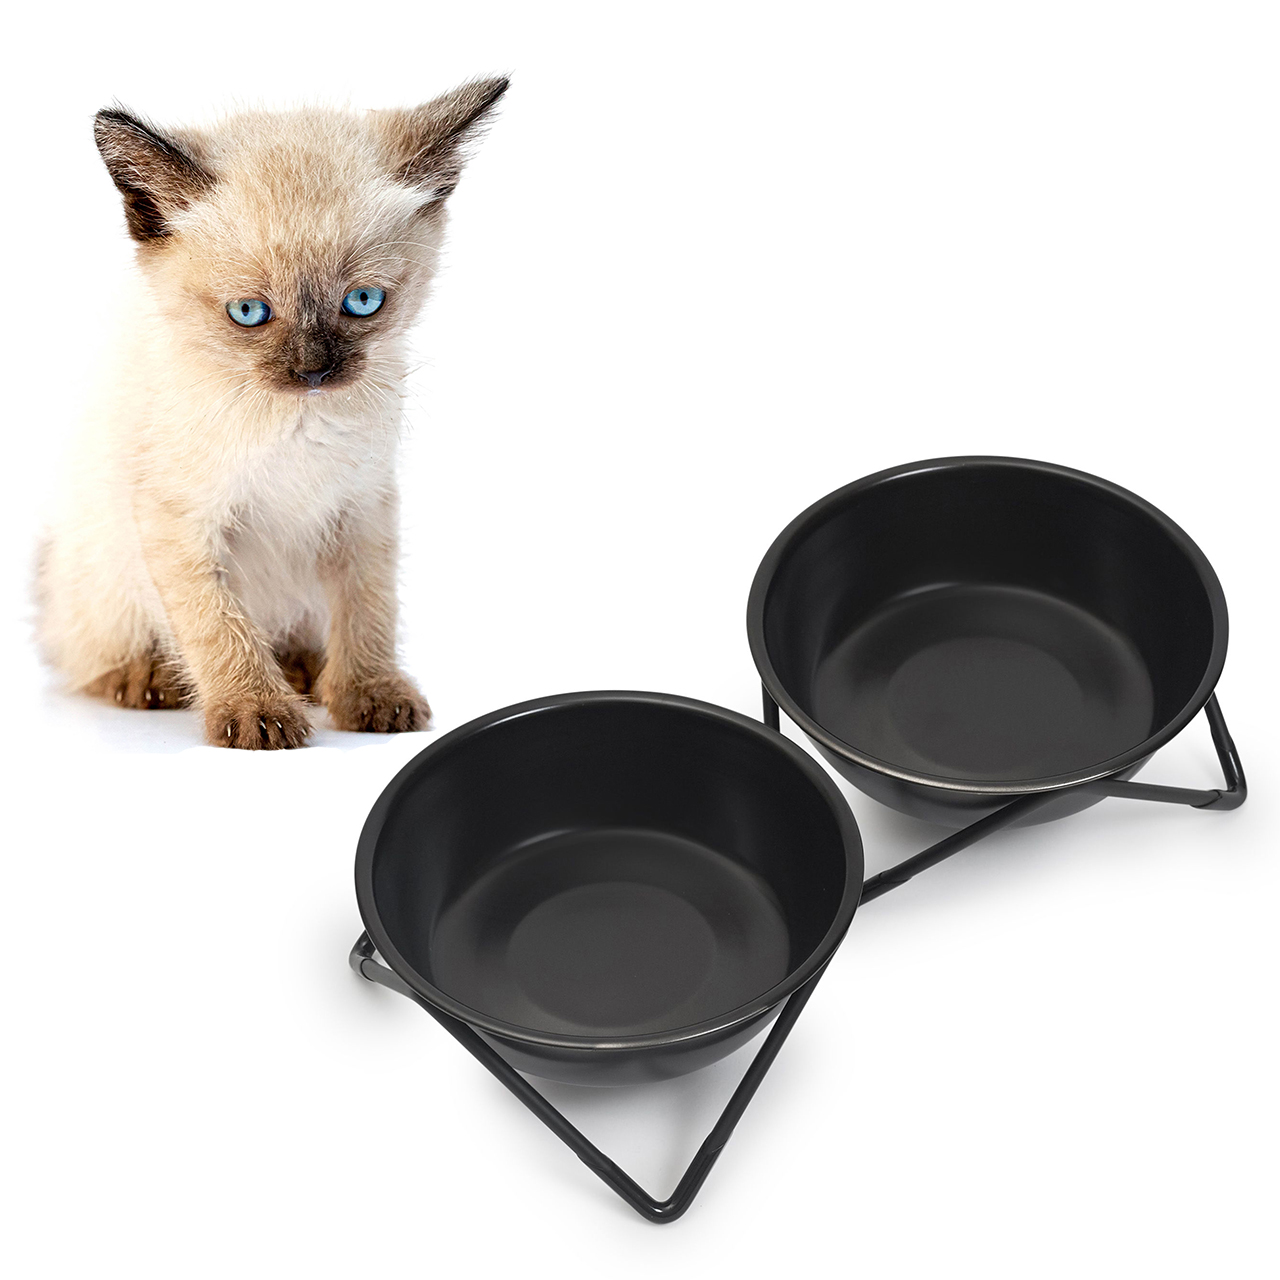 BENDO meow meow luxe cat double dish black on black | the design gift shop